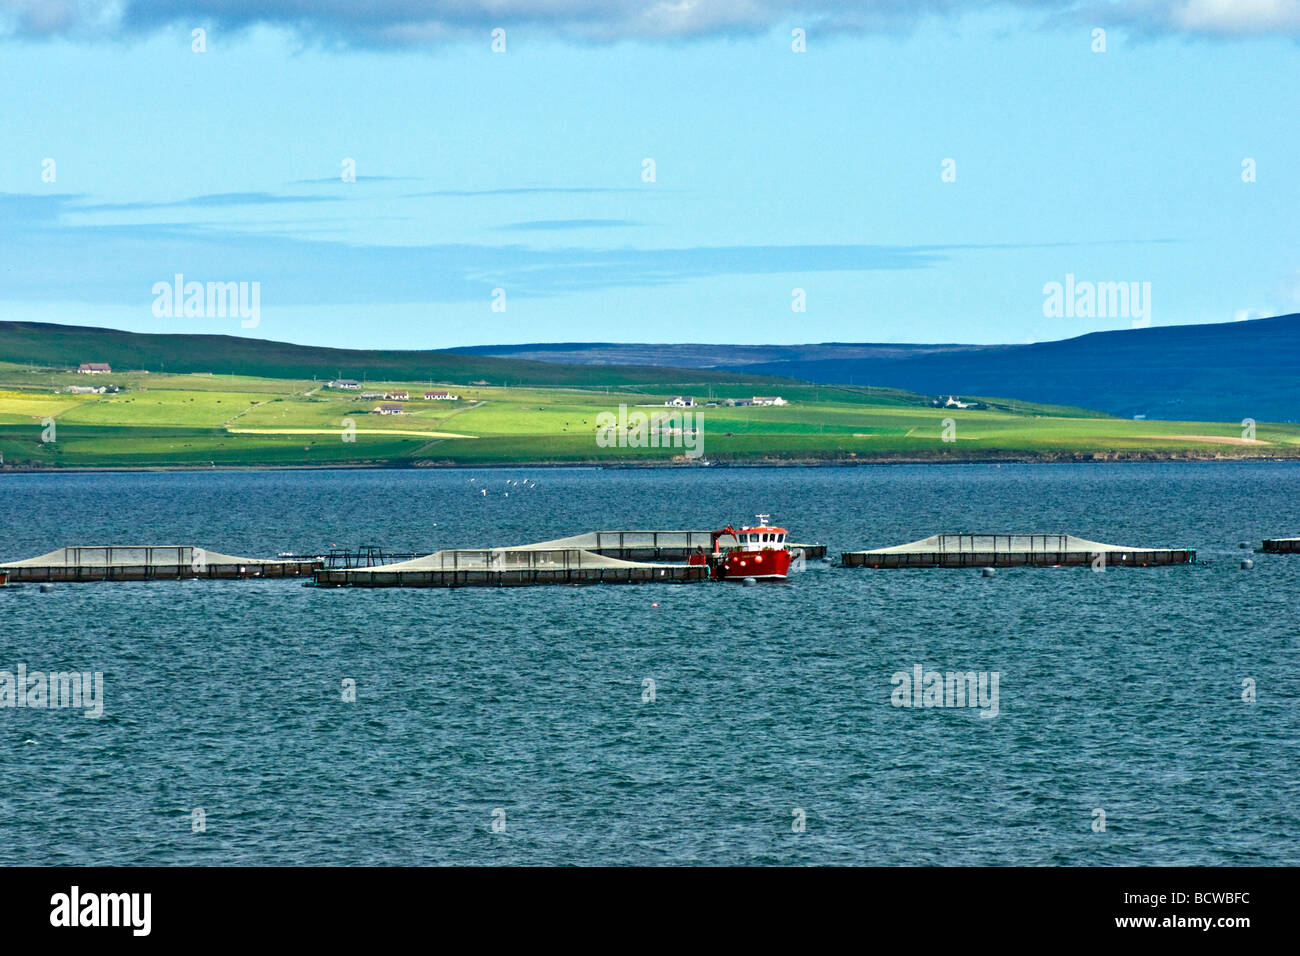 Fish farm at Kirkwall in Orkney Scotland - Stock Image